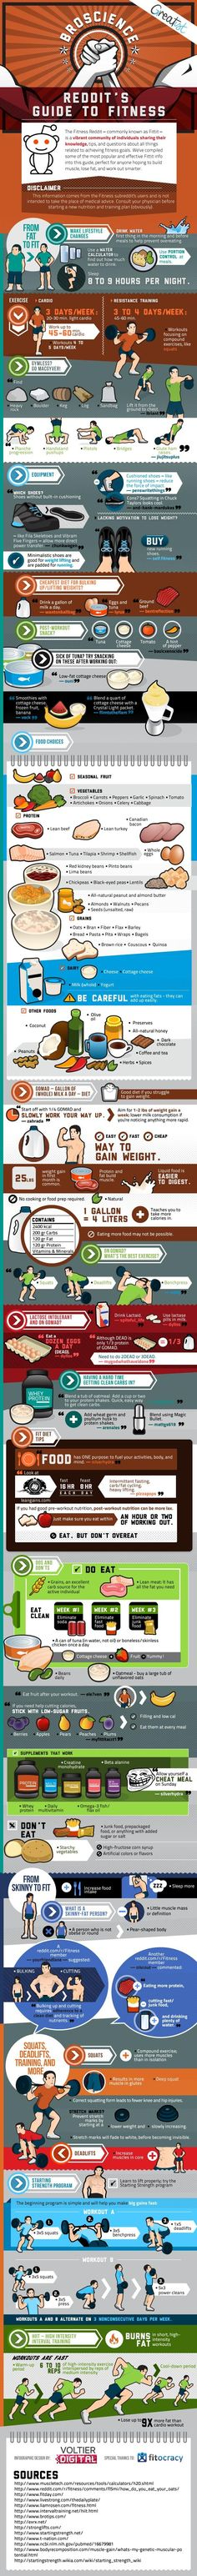 Reddit's Guide to Fitness [Infographic] | Greatist